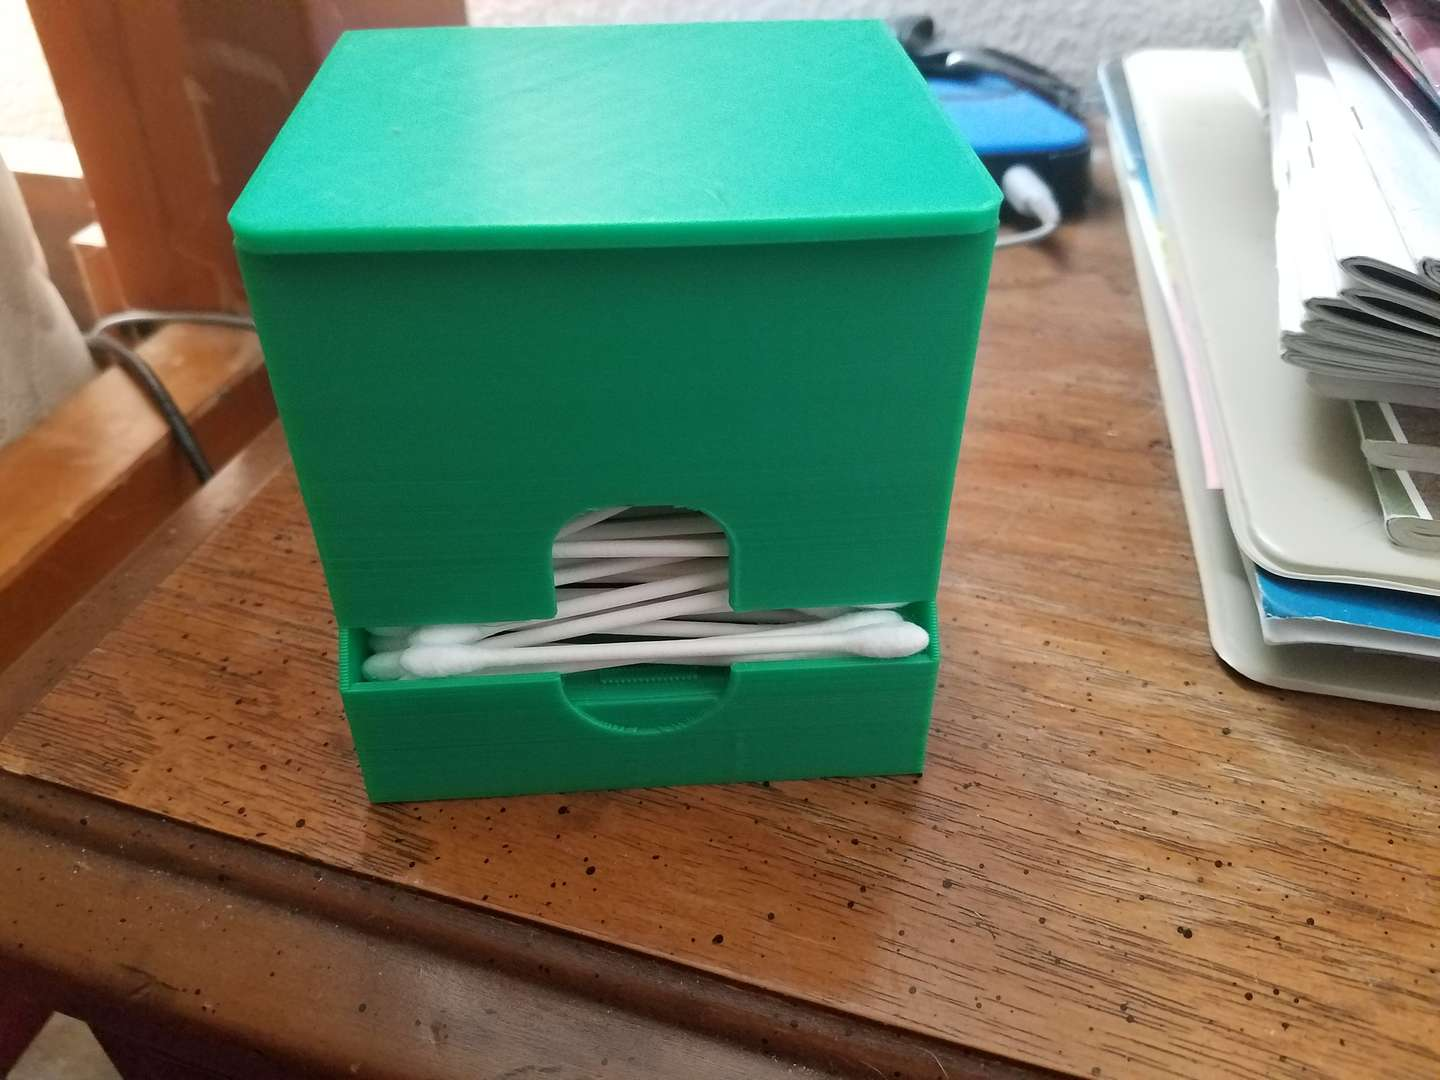 3D printed cotton swab dispenser